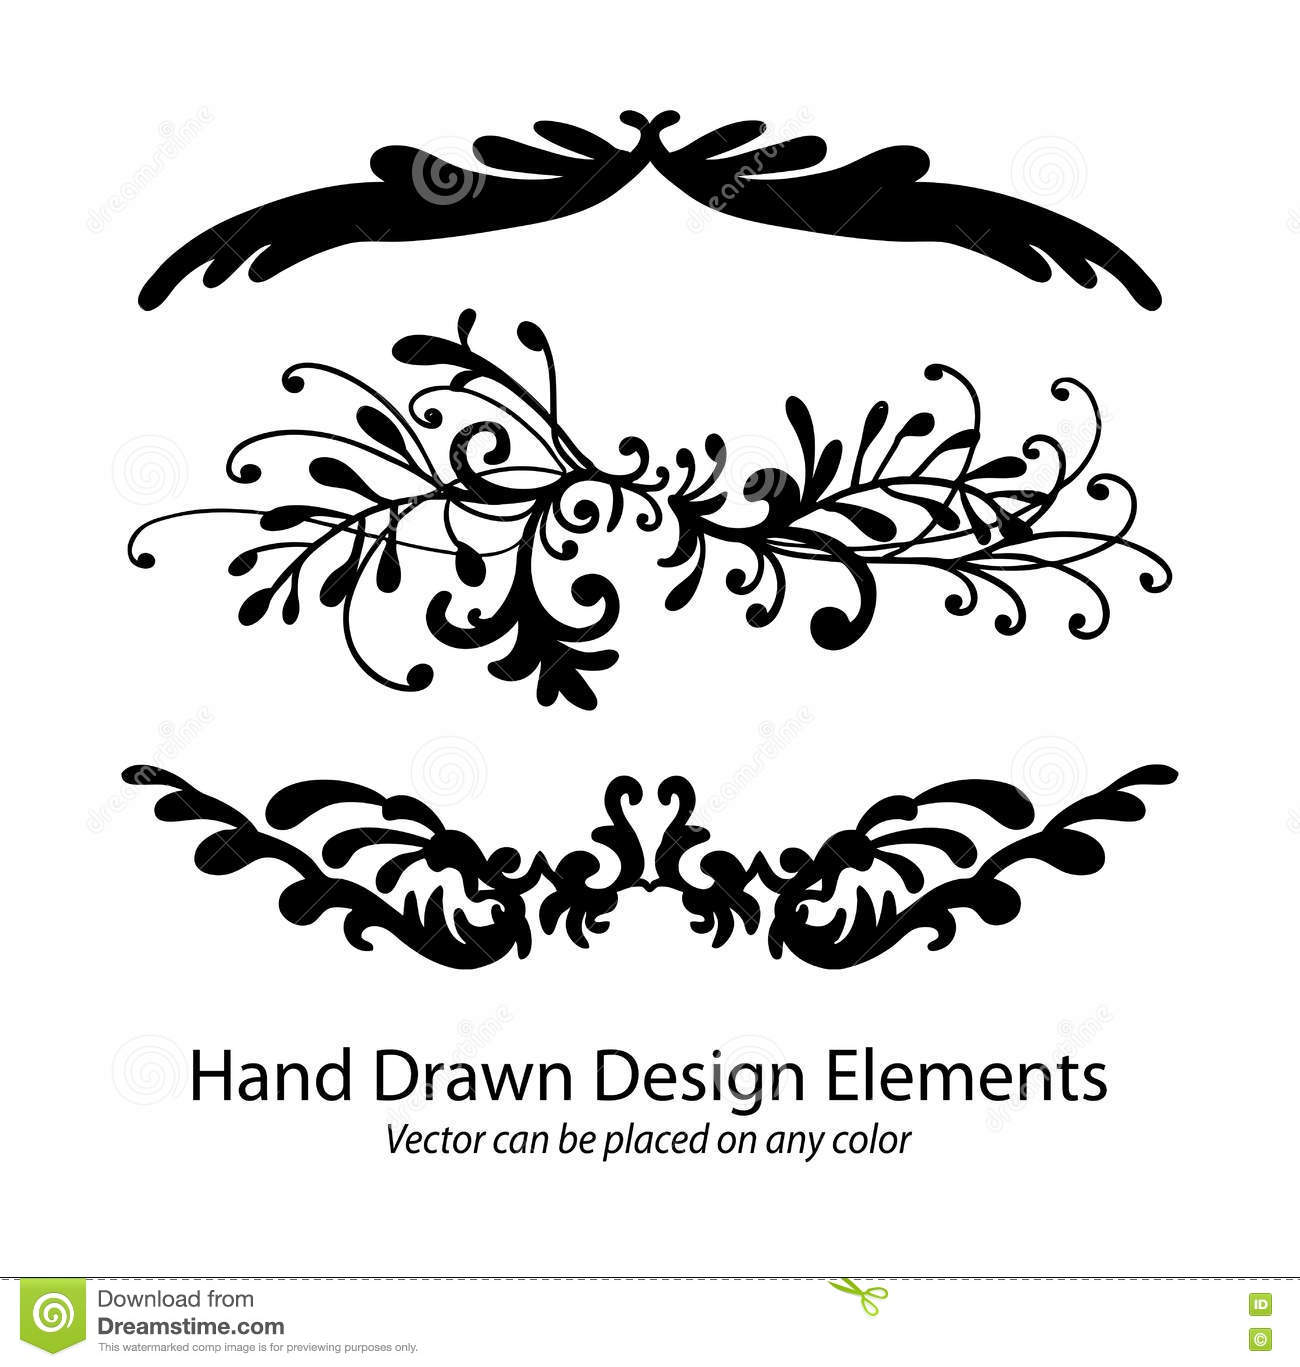 Vector Ornament Decorative Celtic Tree Life 469661306 together with Stock Illustration Ornamental Christmas Text Dividers Ornament Pattern Plant Spiral Image64156335 additionally Poe S Raven Drawing 170615119 together with 128524118 additionally Clipart 91384. on illustration paragraph